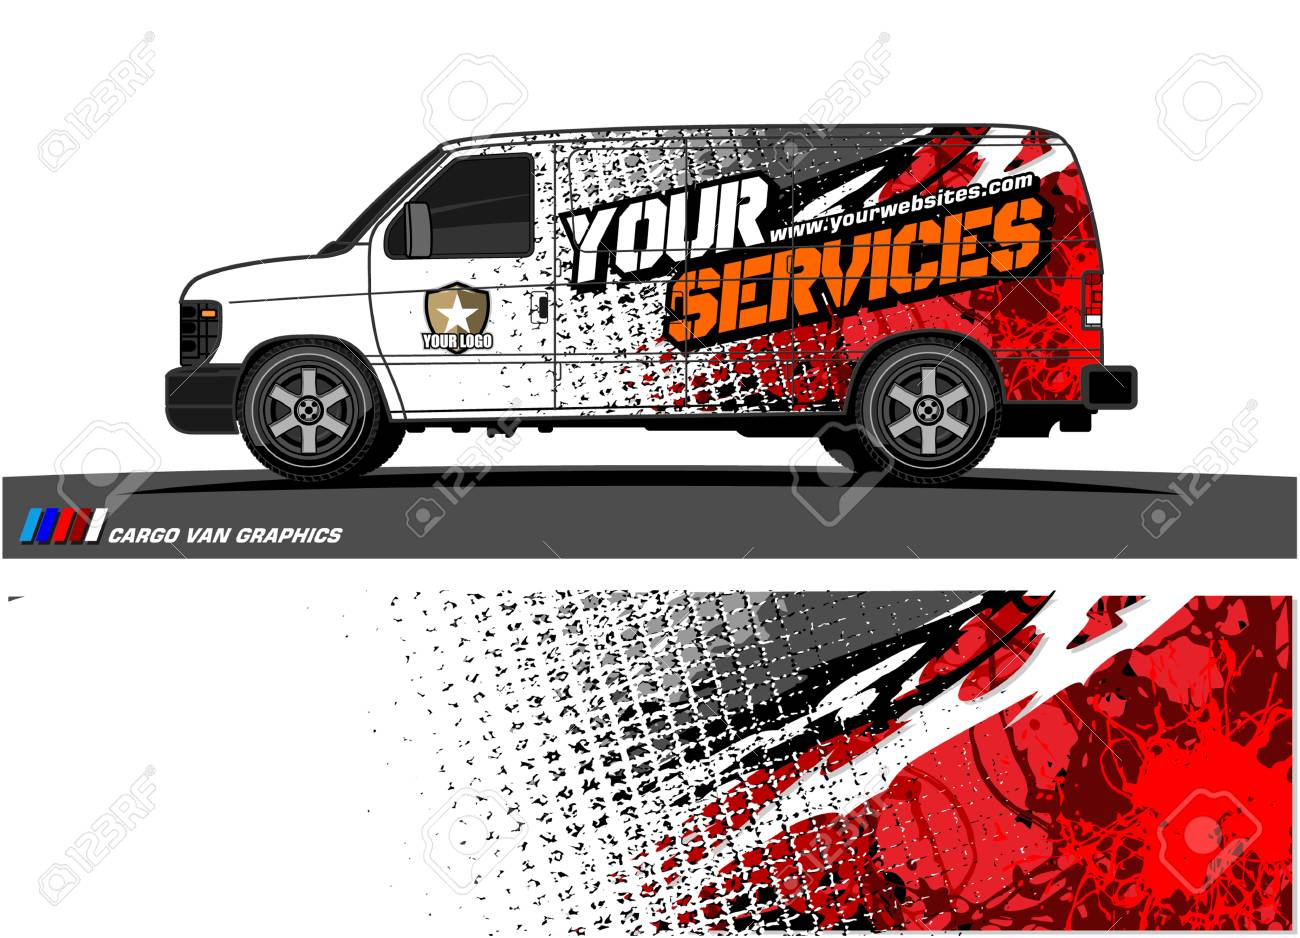 Cargo van graphic vector abstract grunge background design for vehicle vinyl wrap stock vector